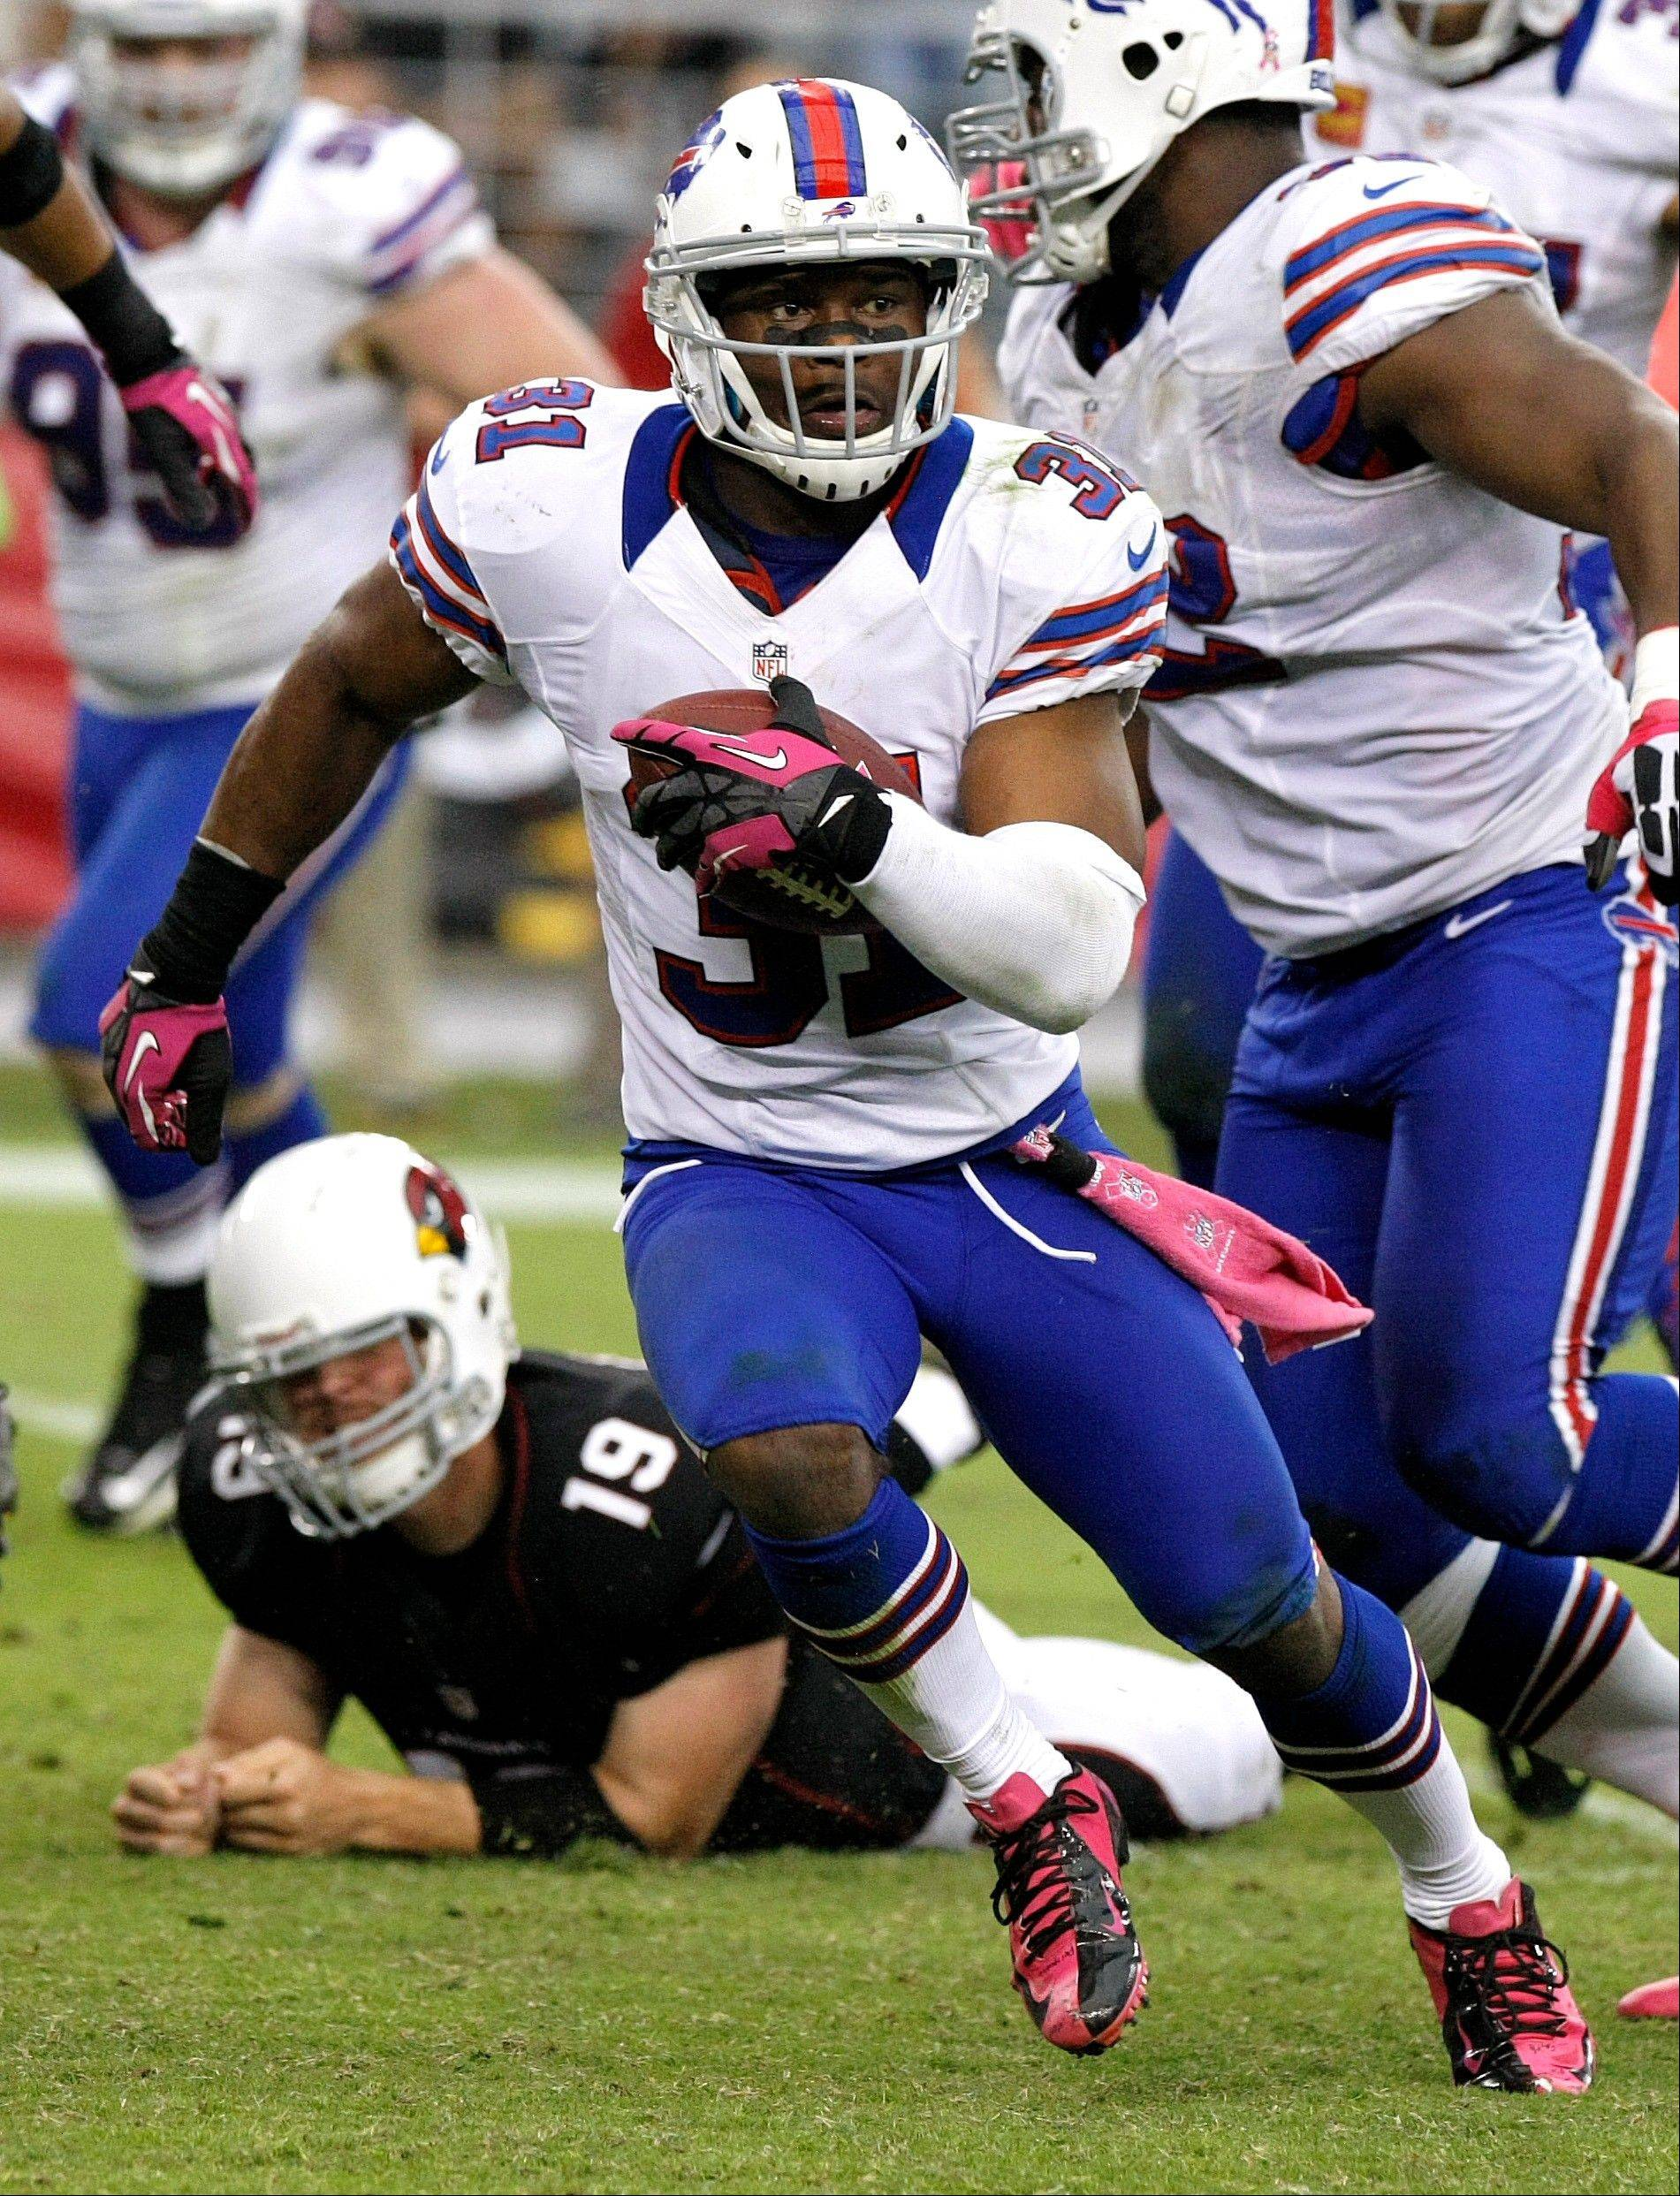 Buffalo Bills free safety Jairus Byrd (31) runs back an interception to set up the game-winning field goal against the Arizona Cardinals during the second half Sunday in Glendale, Ariz. The Bills won 19-16 in overtime.